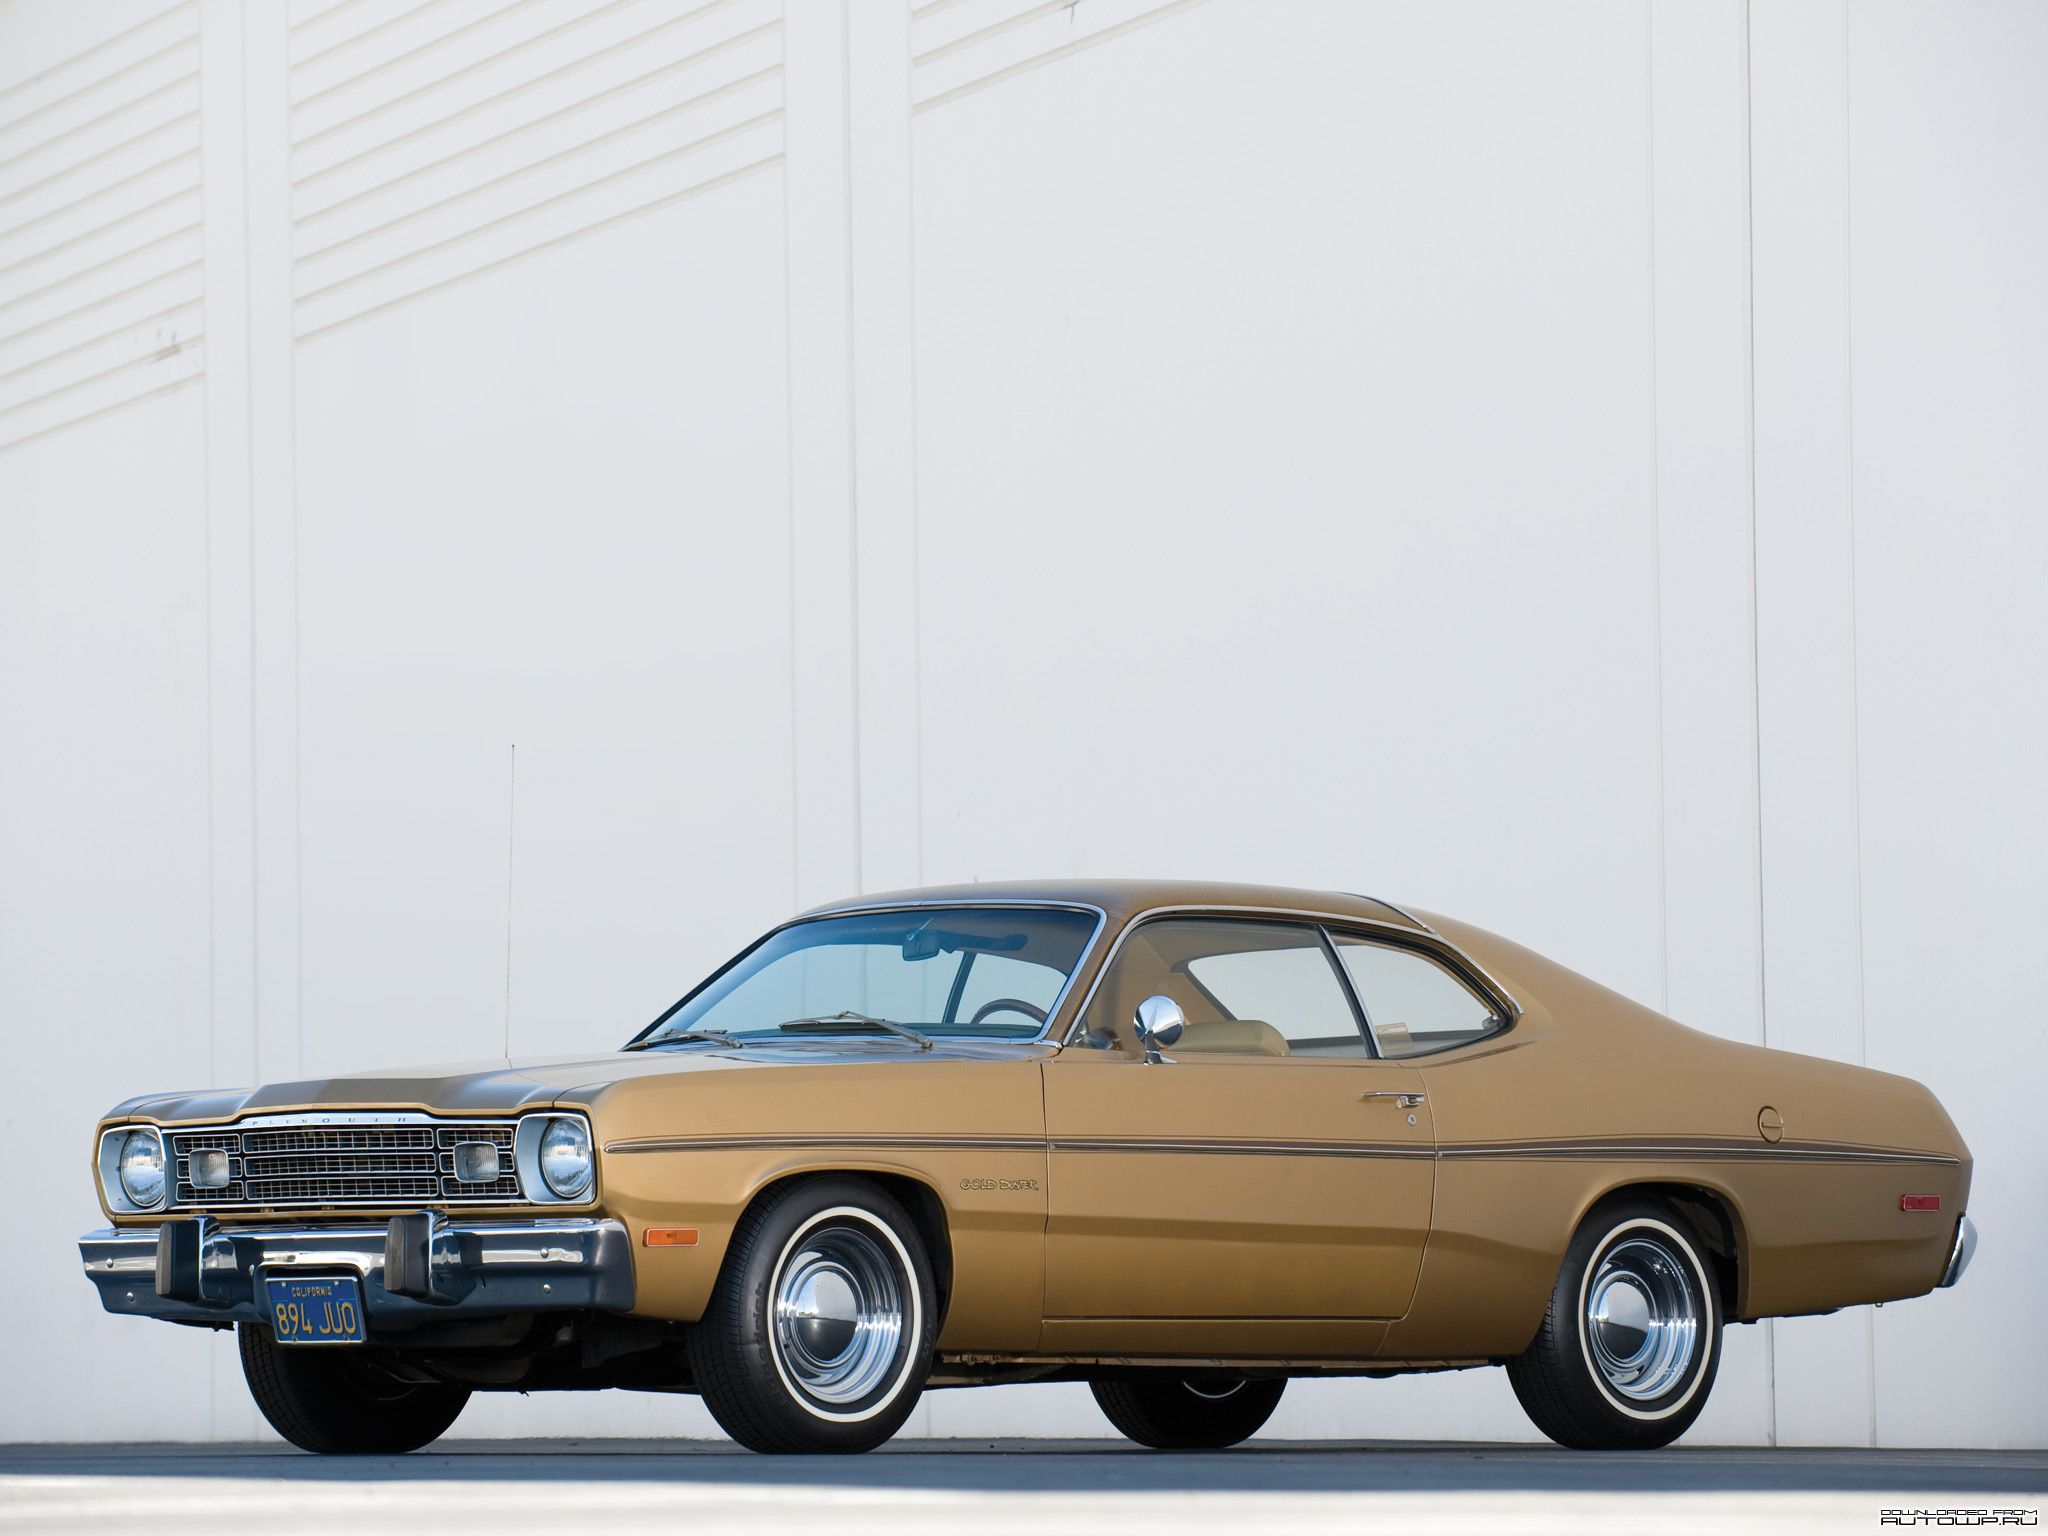 1973 Plymouth Gold Duster I Used To Own One Of These